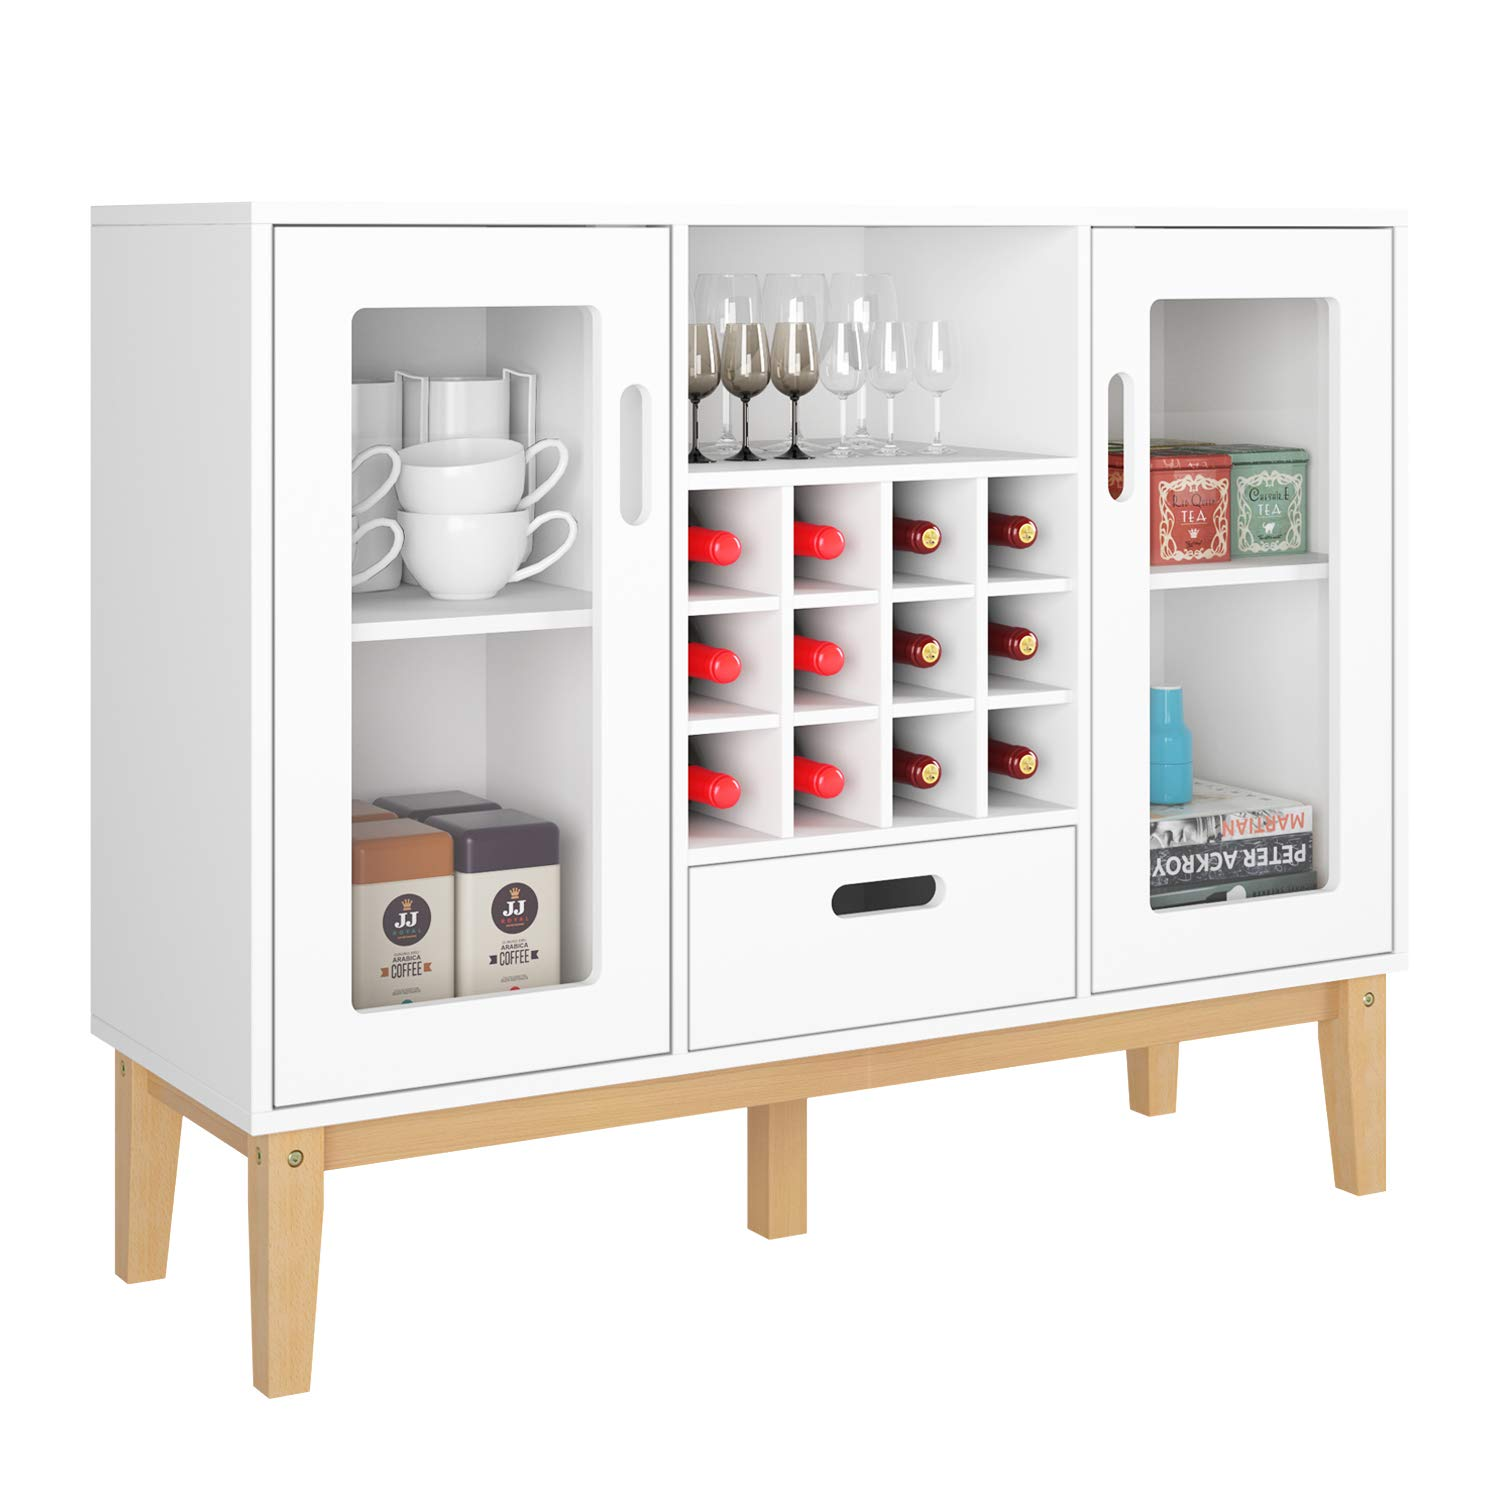 HOMECHO Bar Wine Cabinet Buffet Wood Sideboard Cupboard Table with 12 Bottles Holder Storage Rack, 1 Drawer 2 Doors Open Shelf with Solid Wood Legs, White HMC-MD-017 by HOMECHO